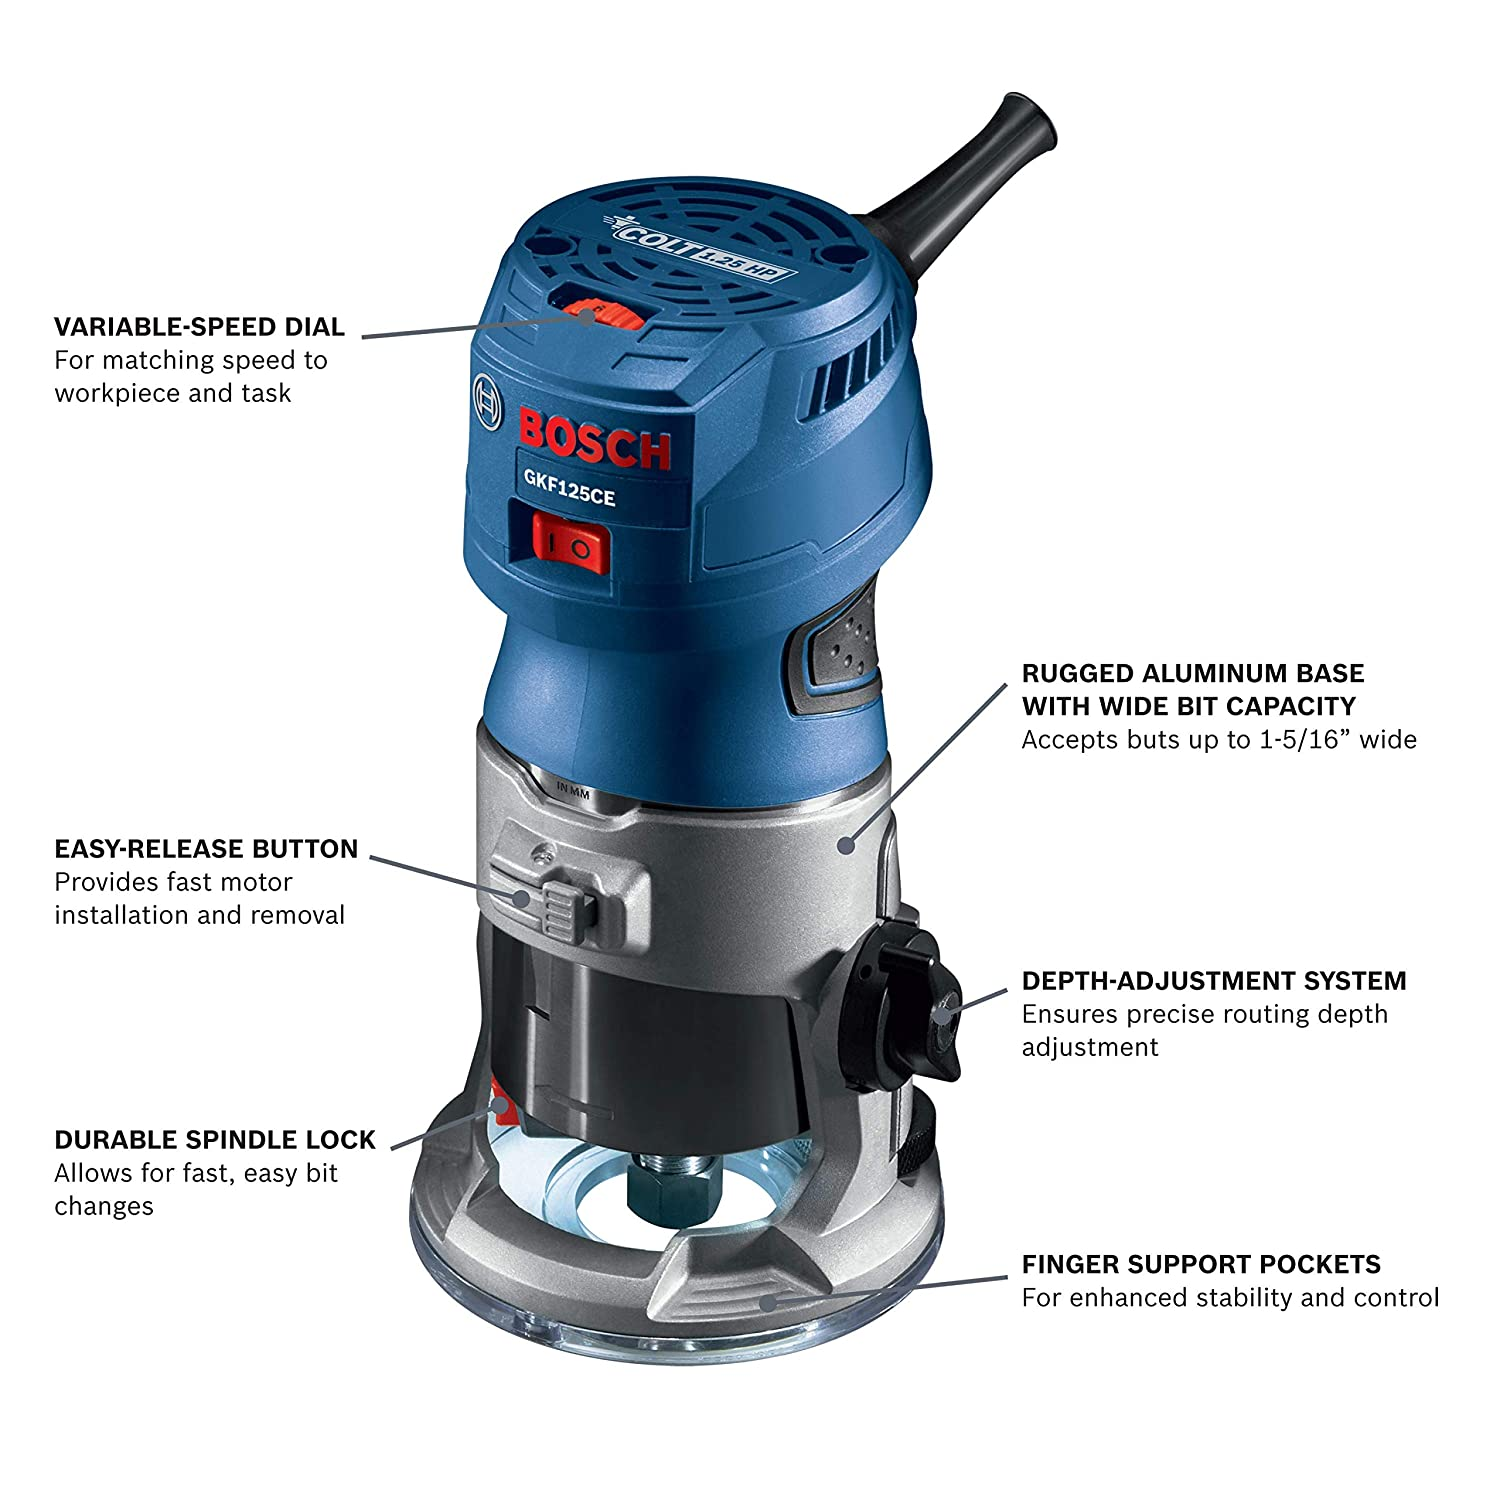 Bosch GKF125CEN Colt 1.25 HP Max Variable-Speed Palm Router